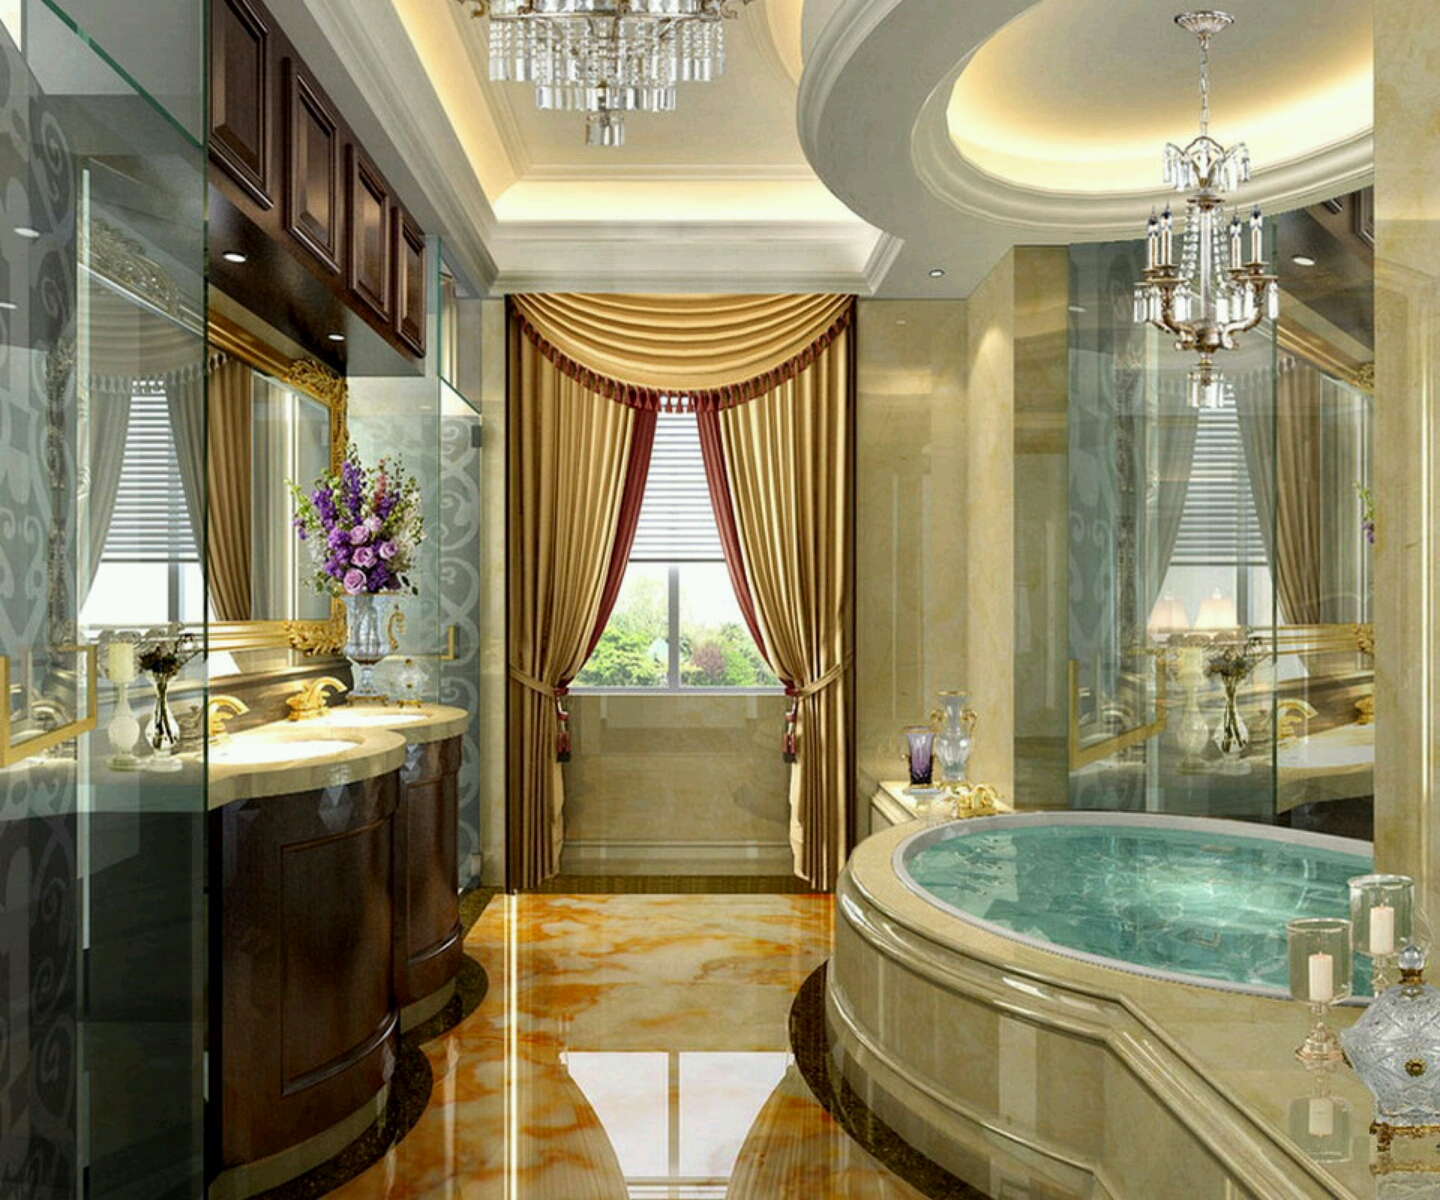 Luxury Modern Bathrooms Designs Decoration Ideas.